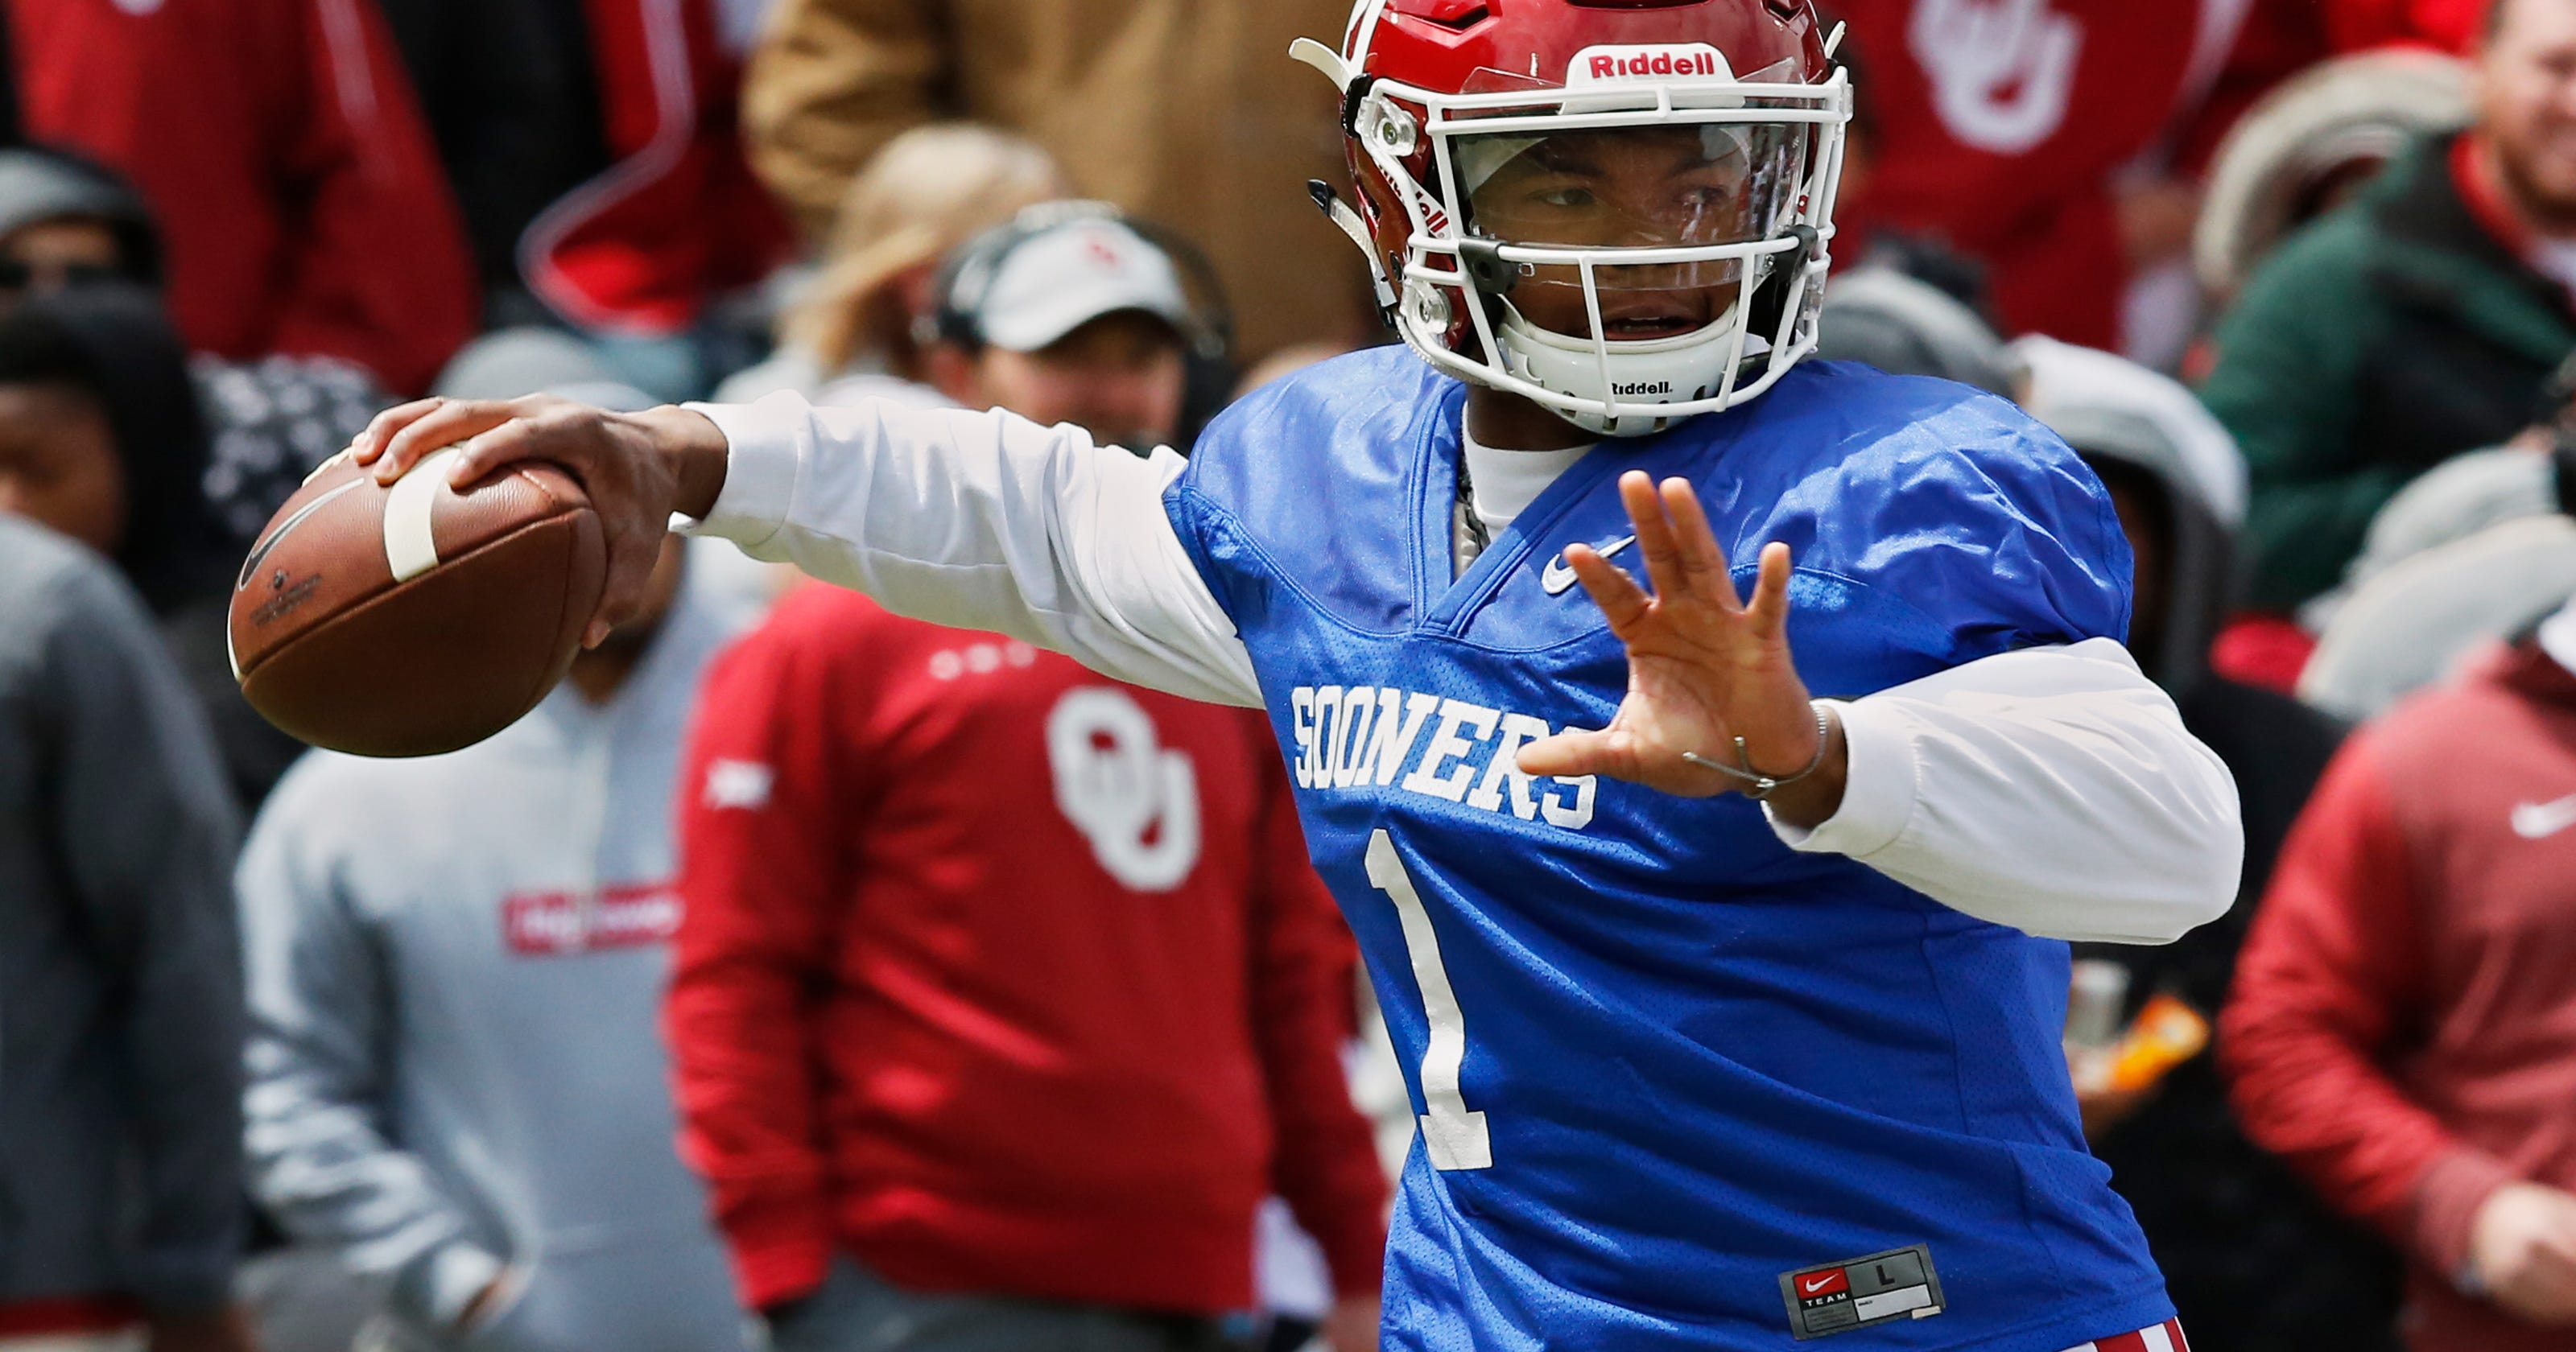 sale retailer 3fe14 6685a QB Murray says he'll play for OU after being drafted by A's